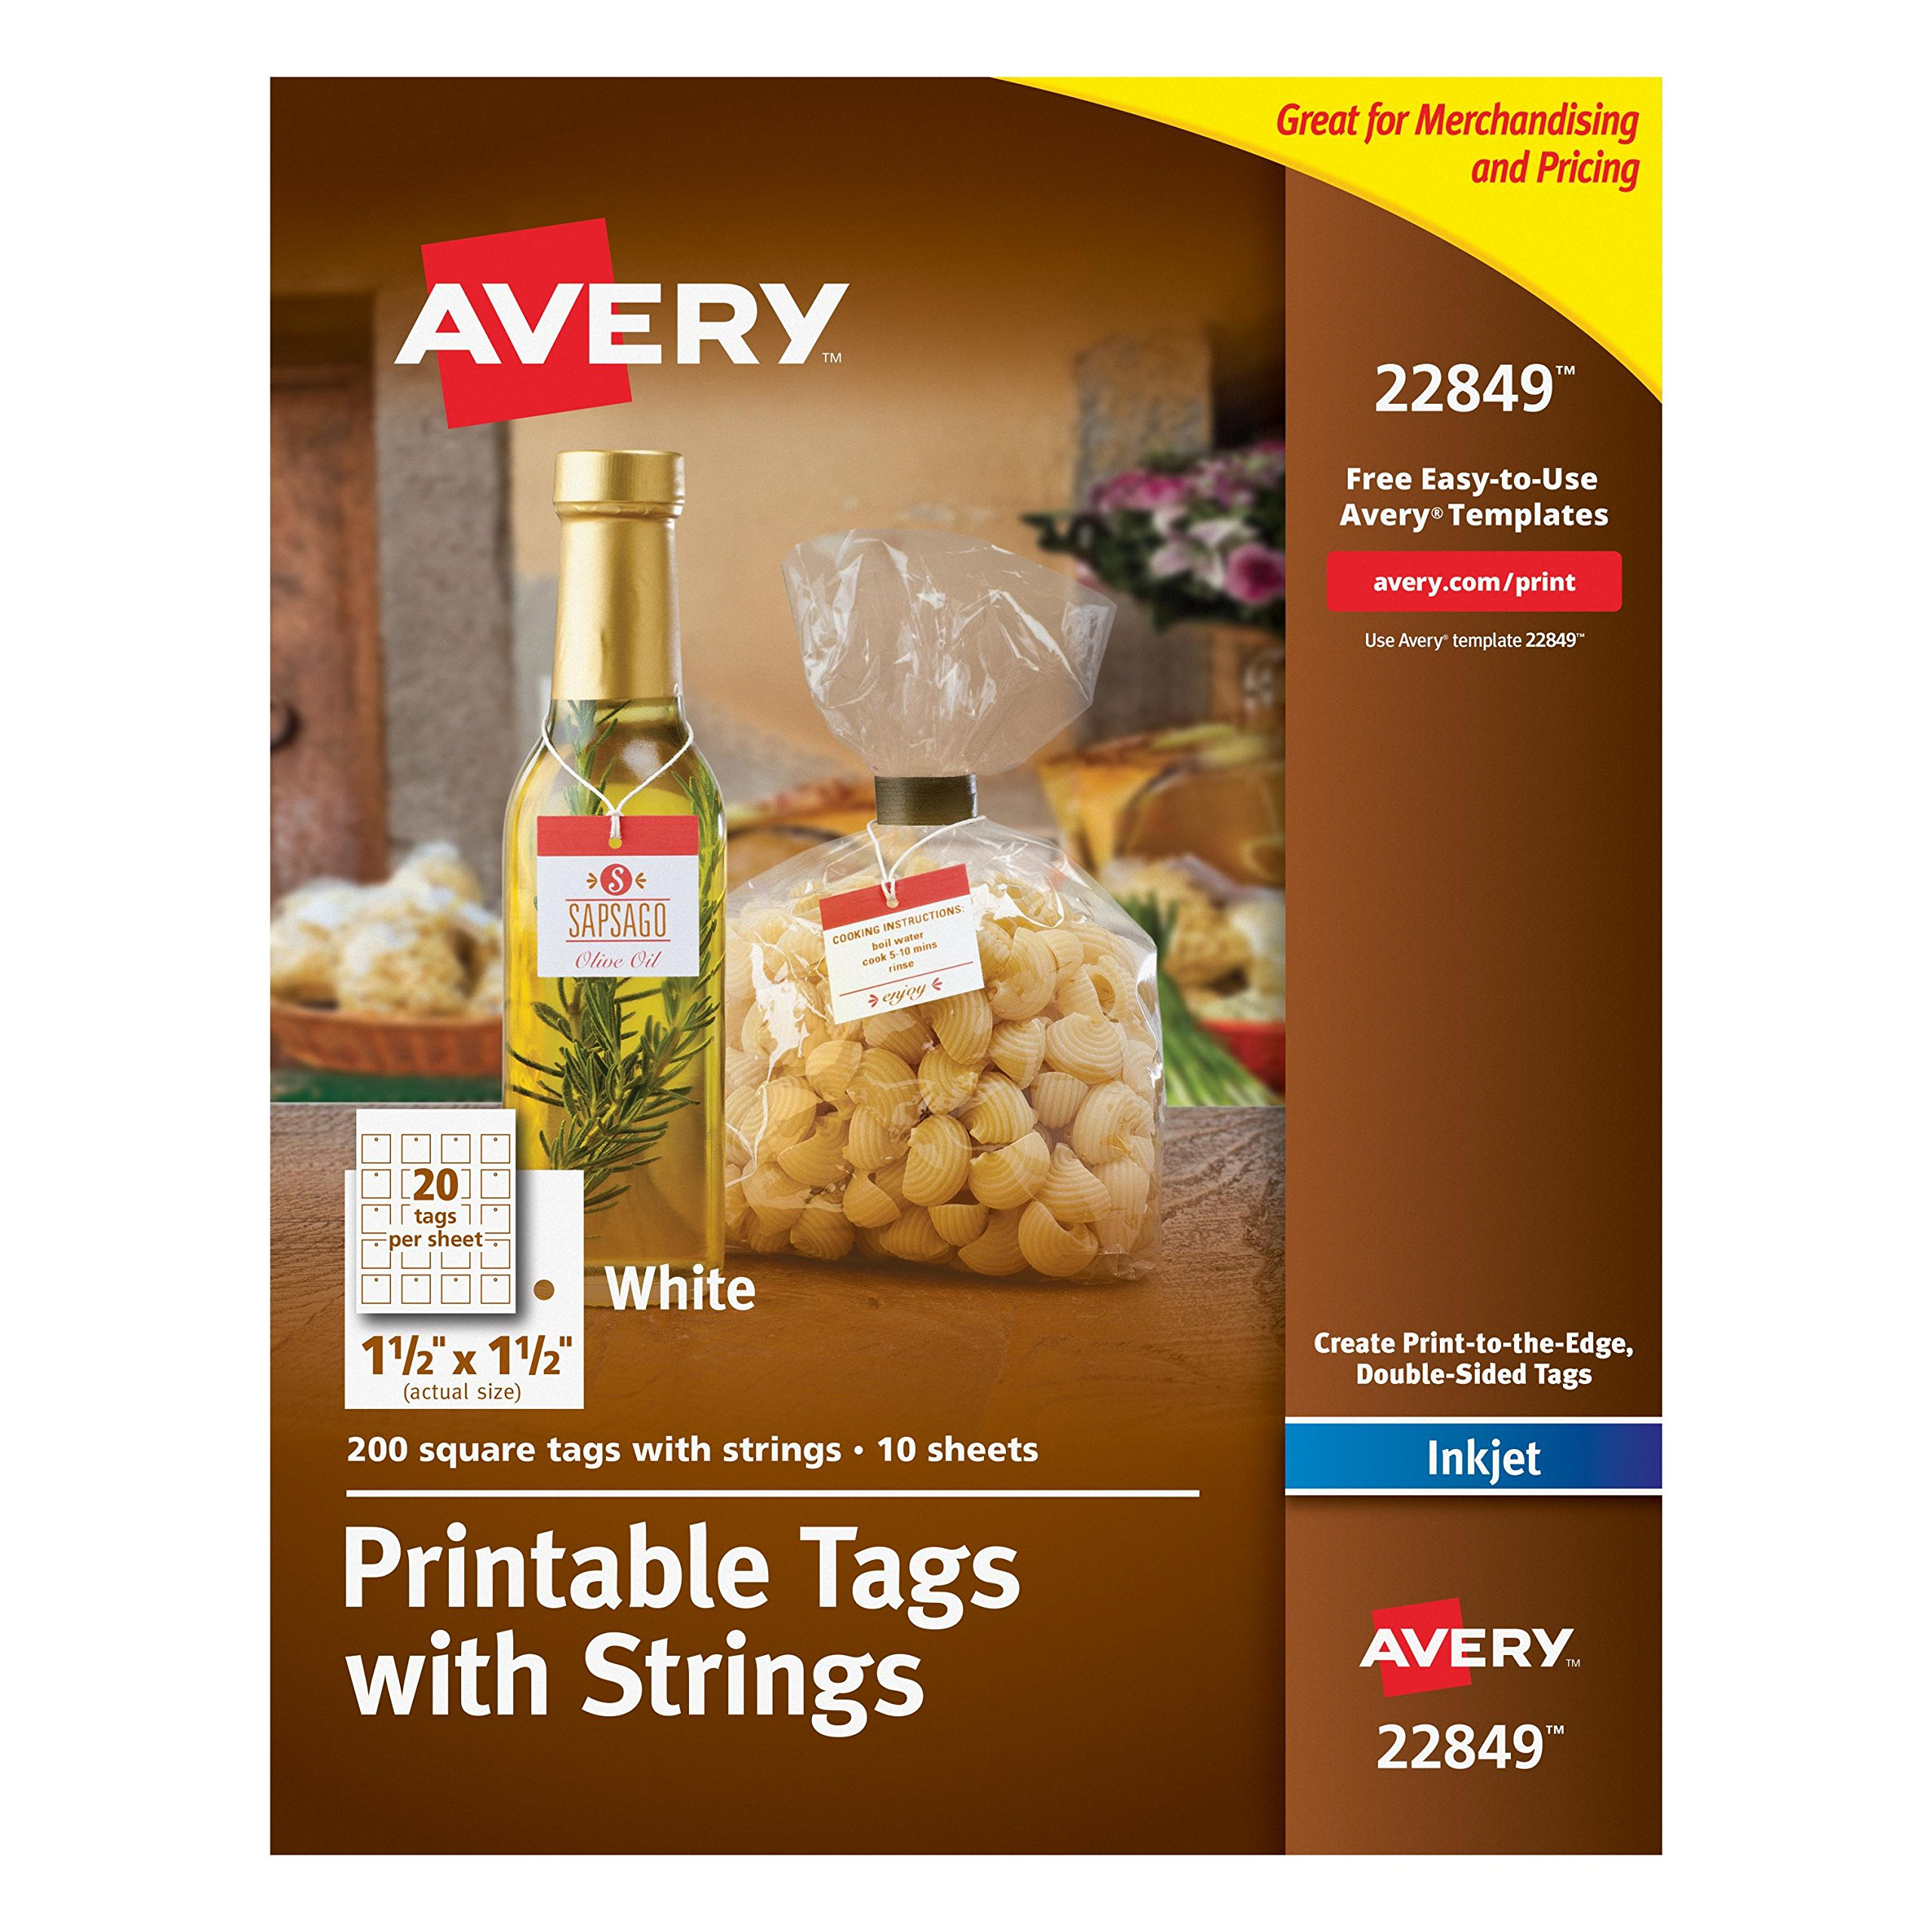 Avery Printable Tags with Strings, White, 1.5 x 1.5 Inches, Pack of 200 (22849)